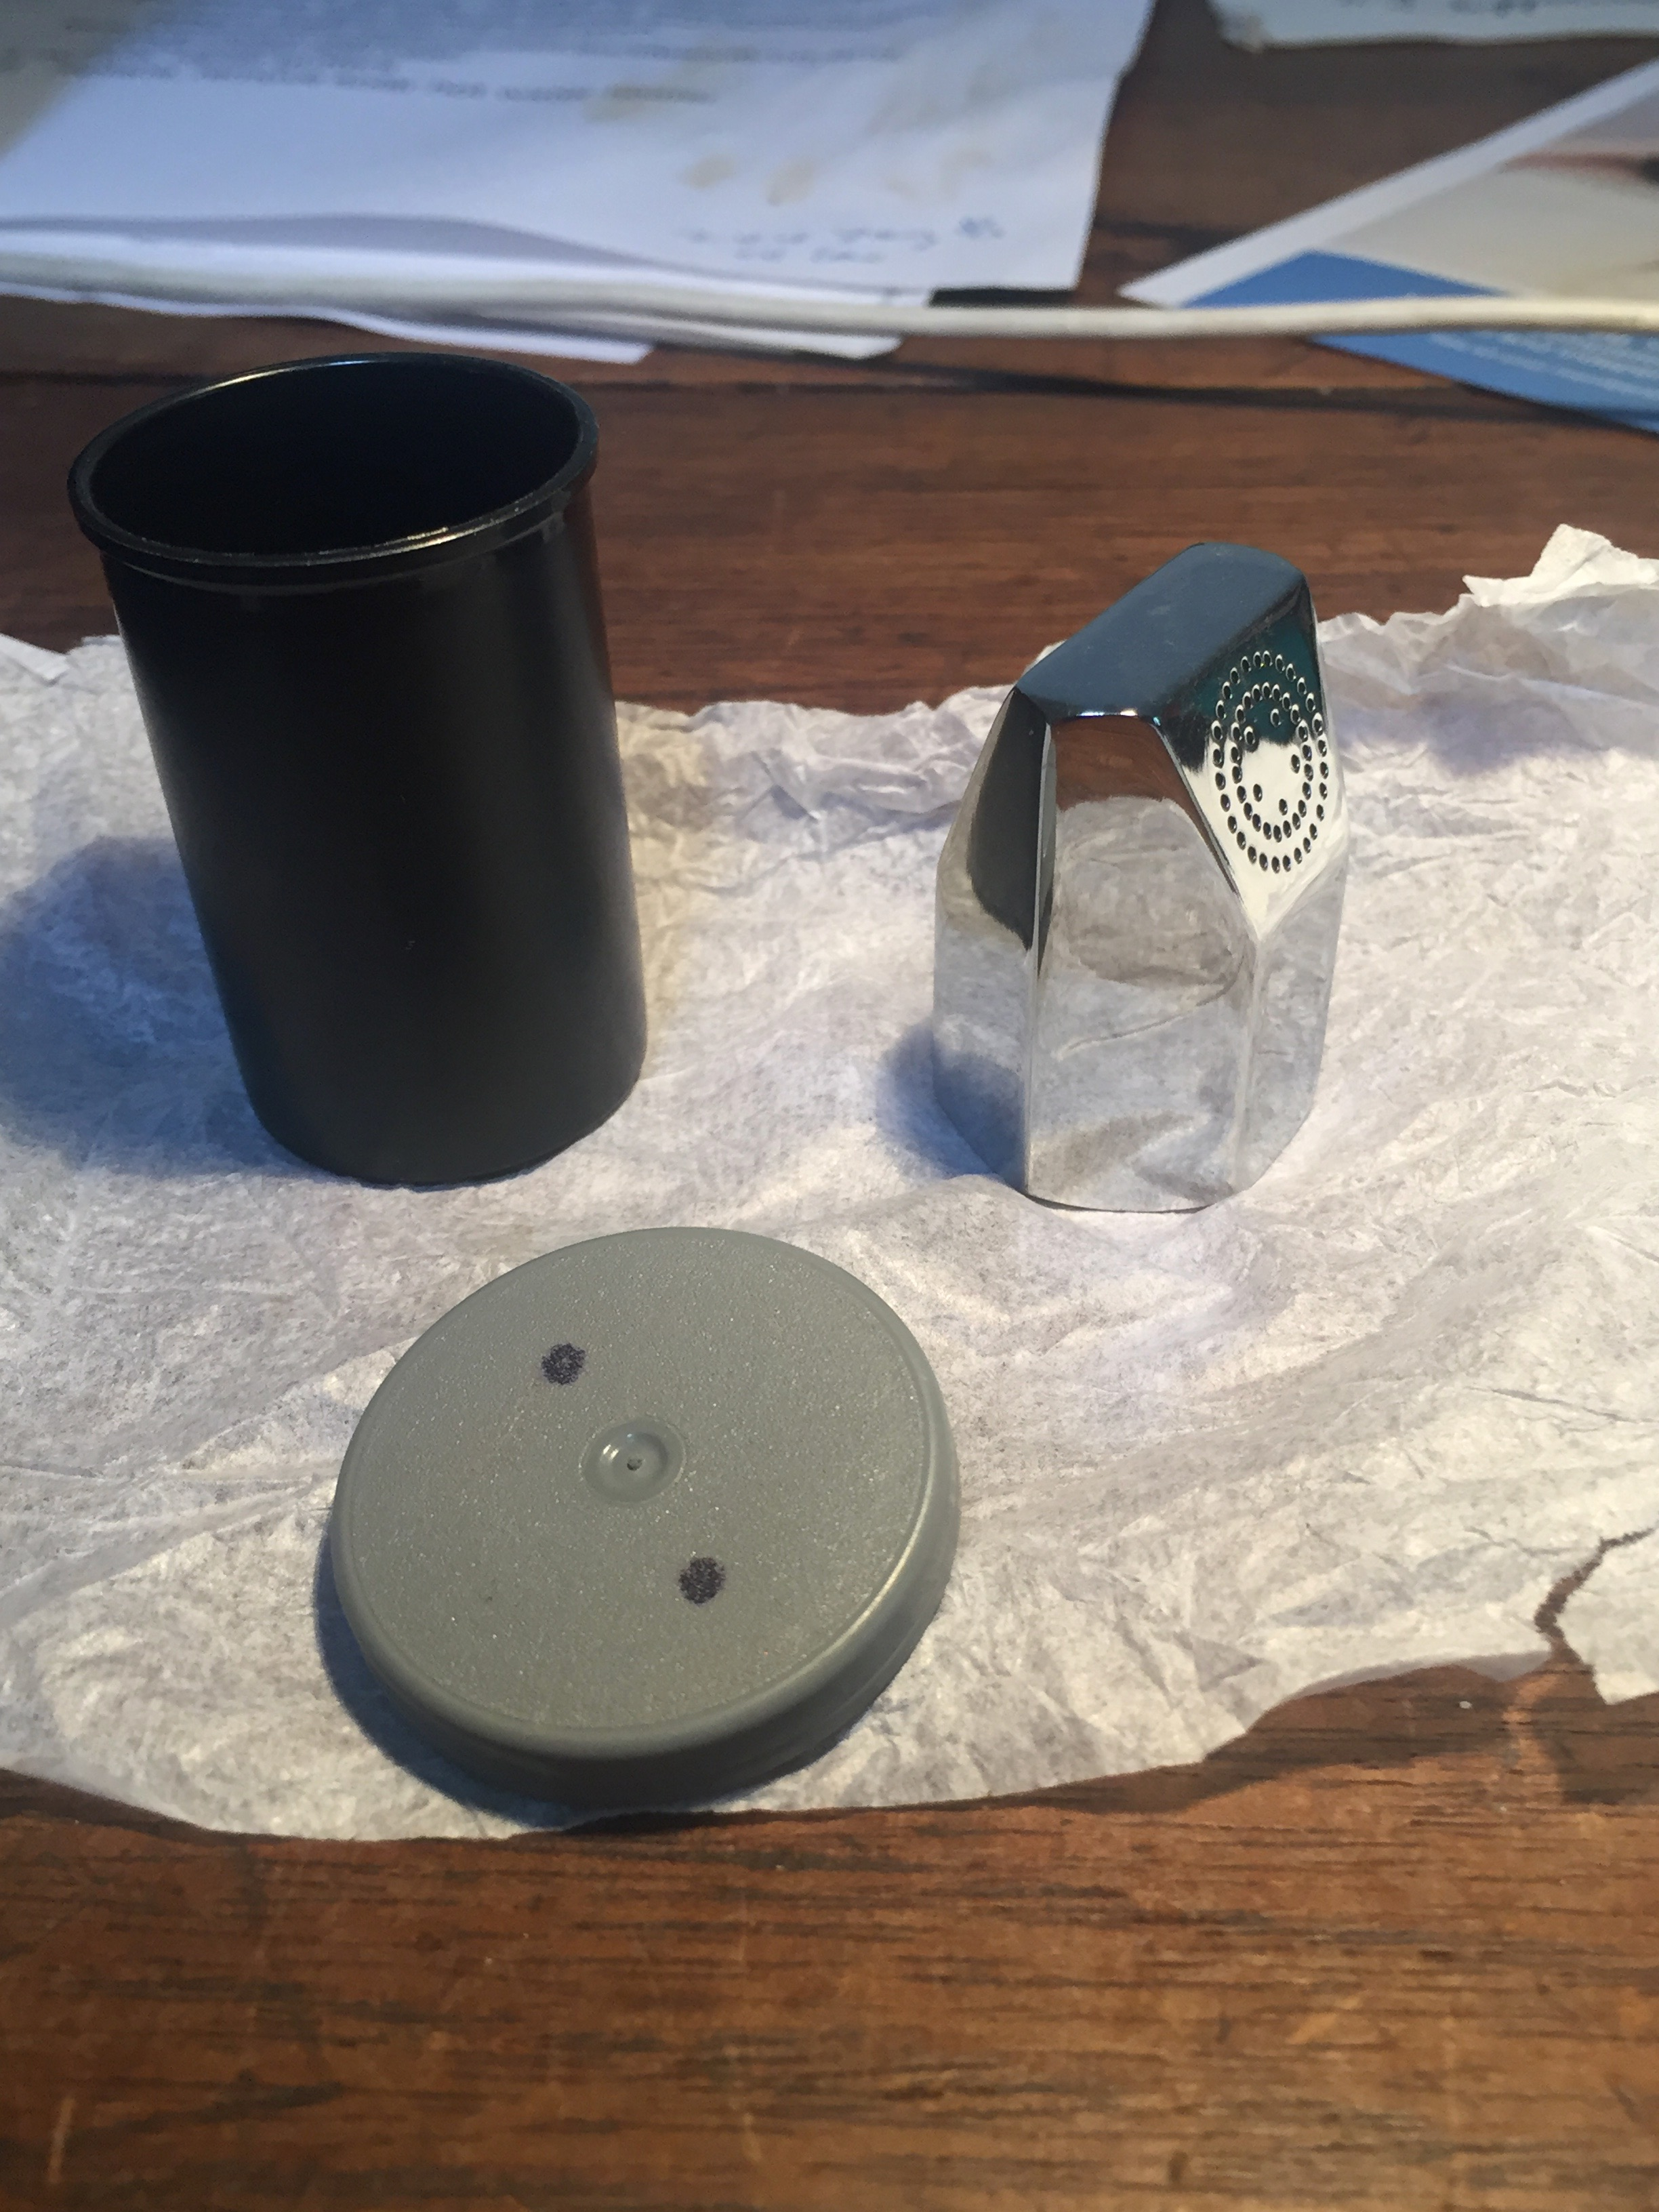 Ecoshower  comes in a small film canister and this is it on my desk when I unpacked it yesterday